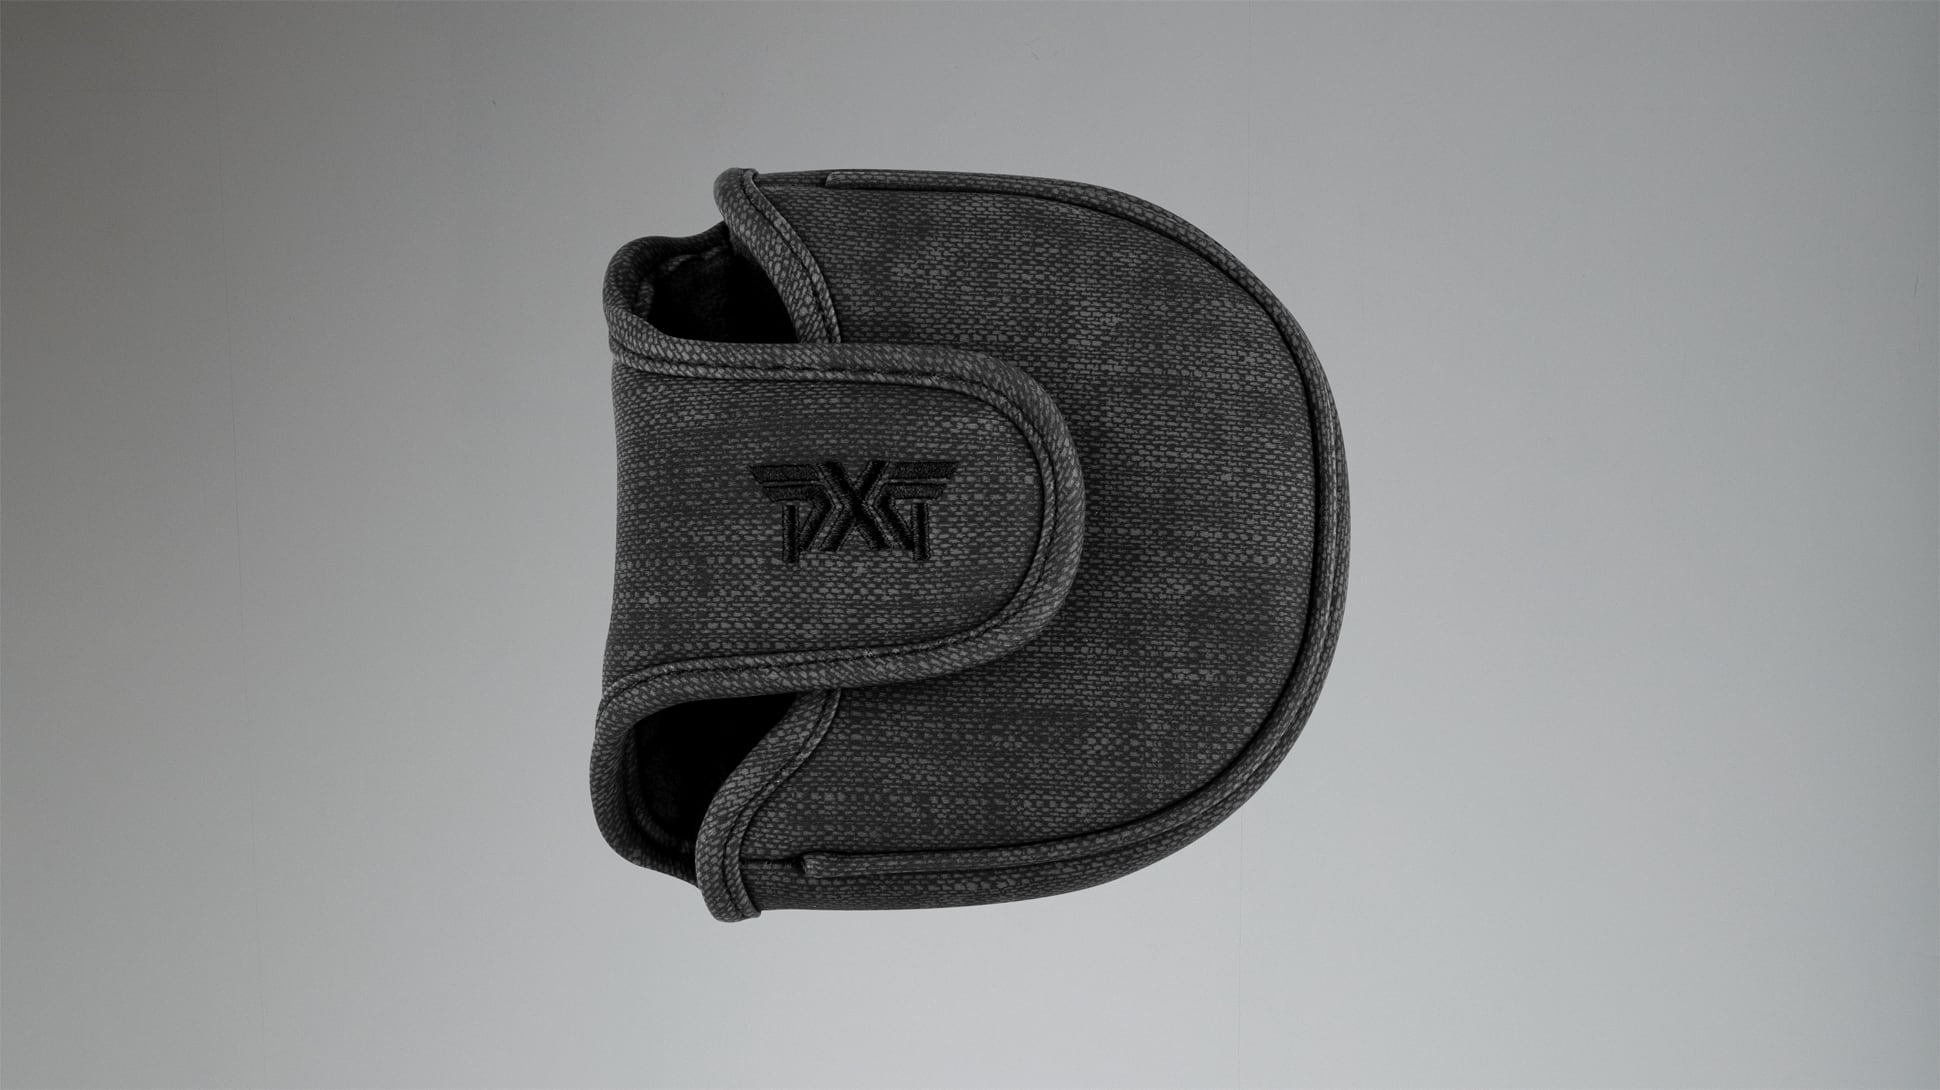 Darkness Mallet Putter Headcover Image 2